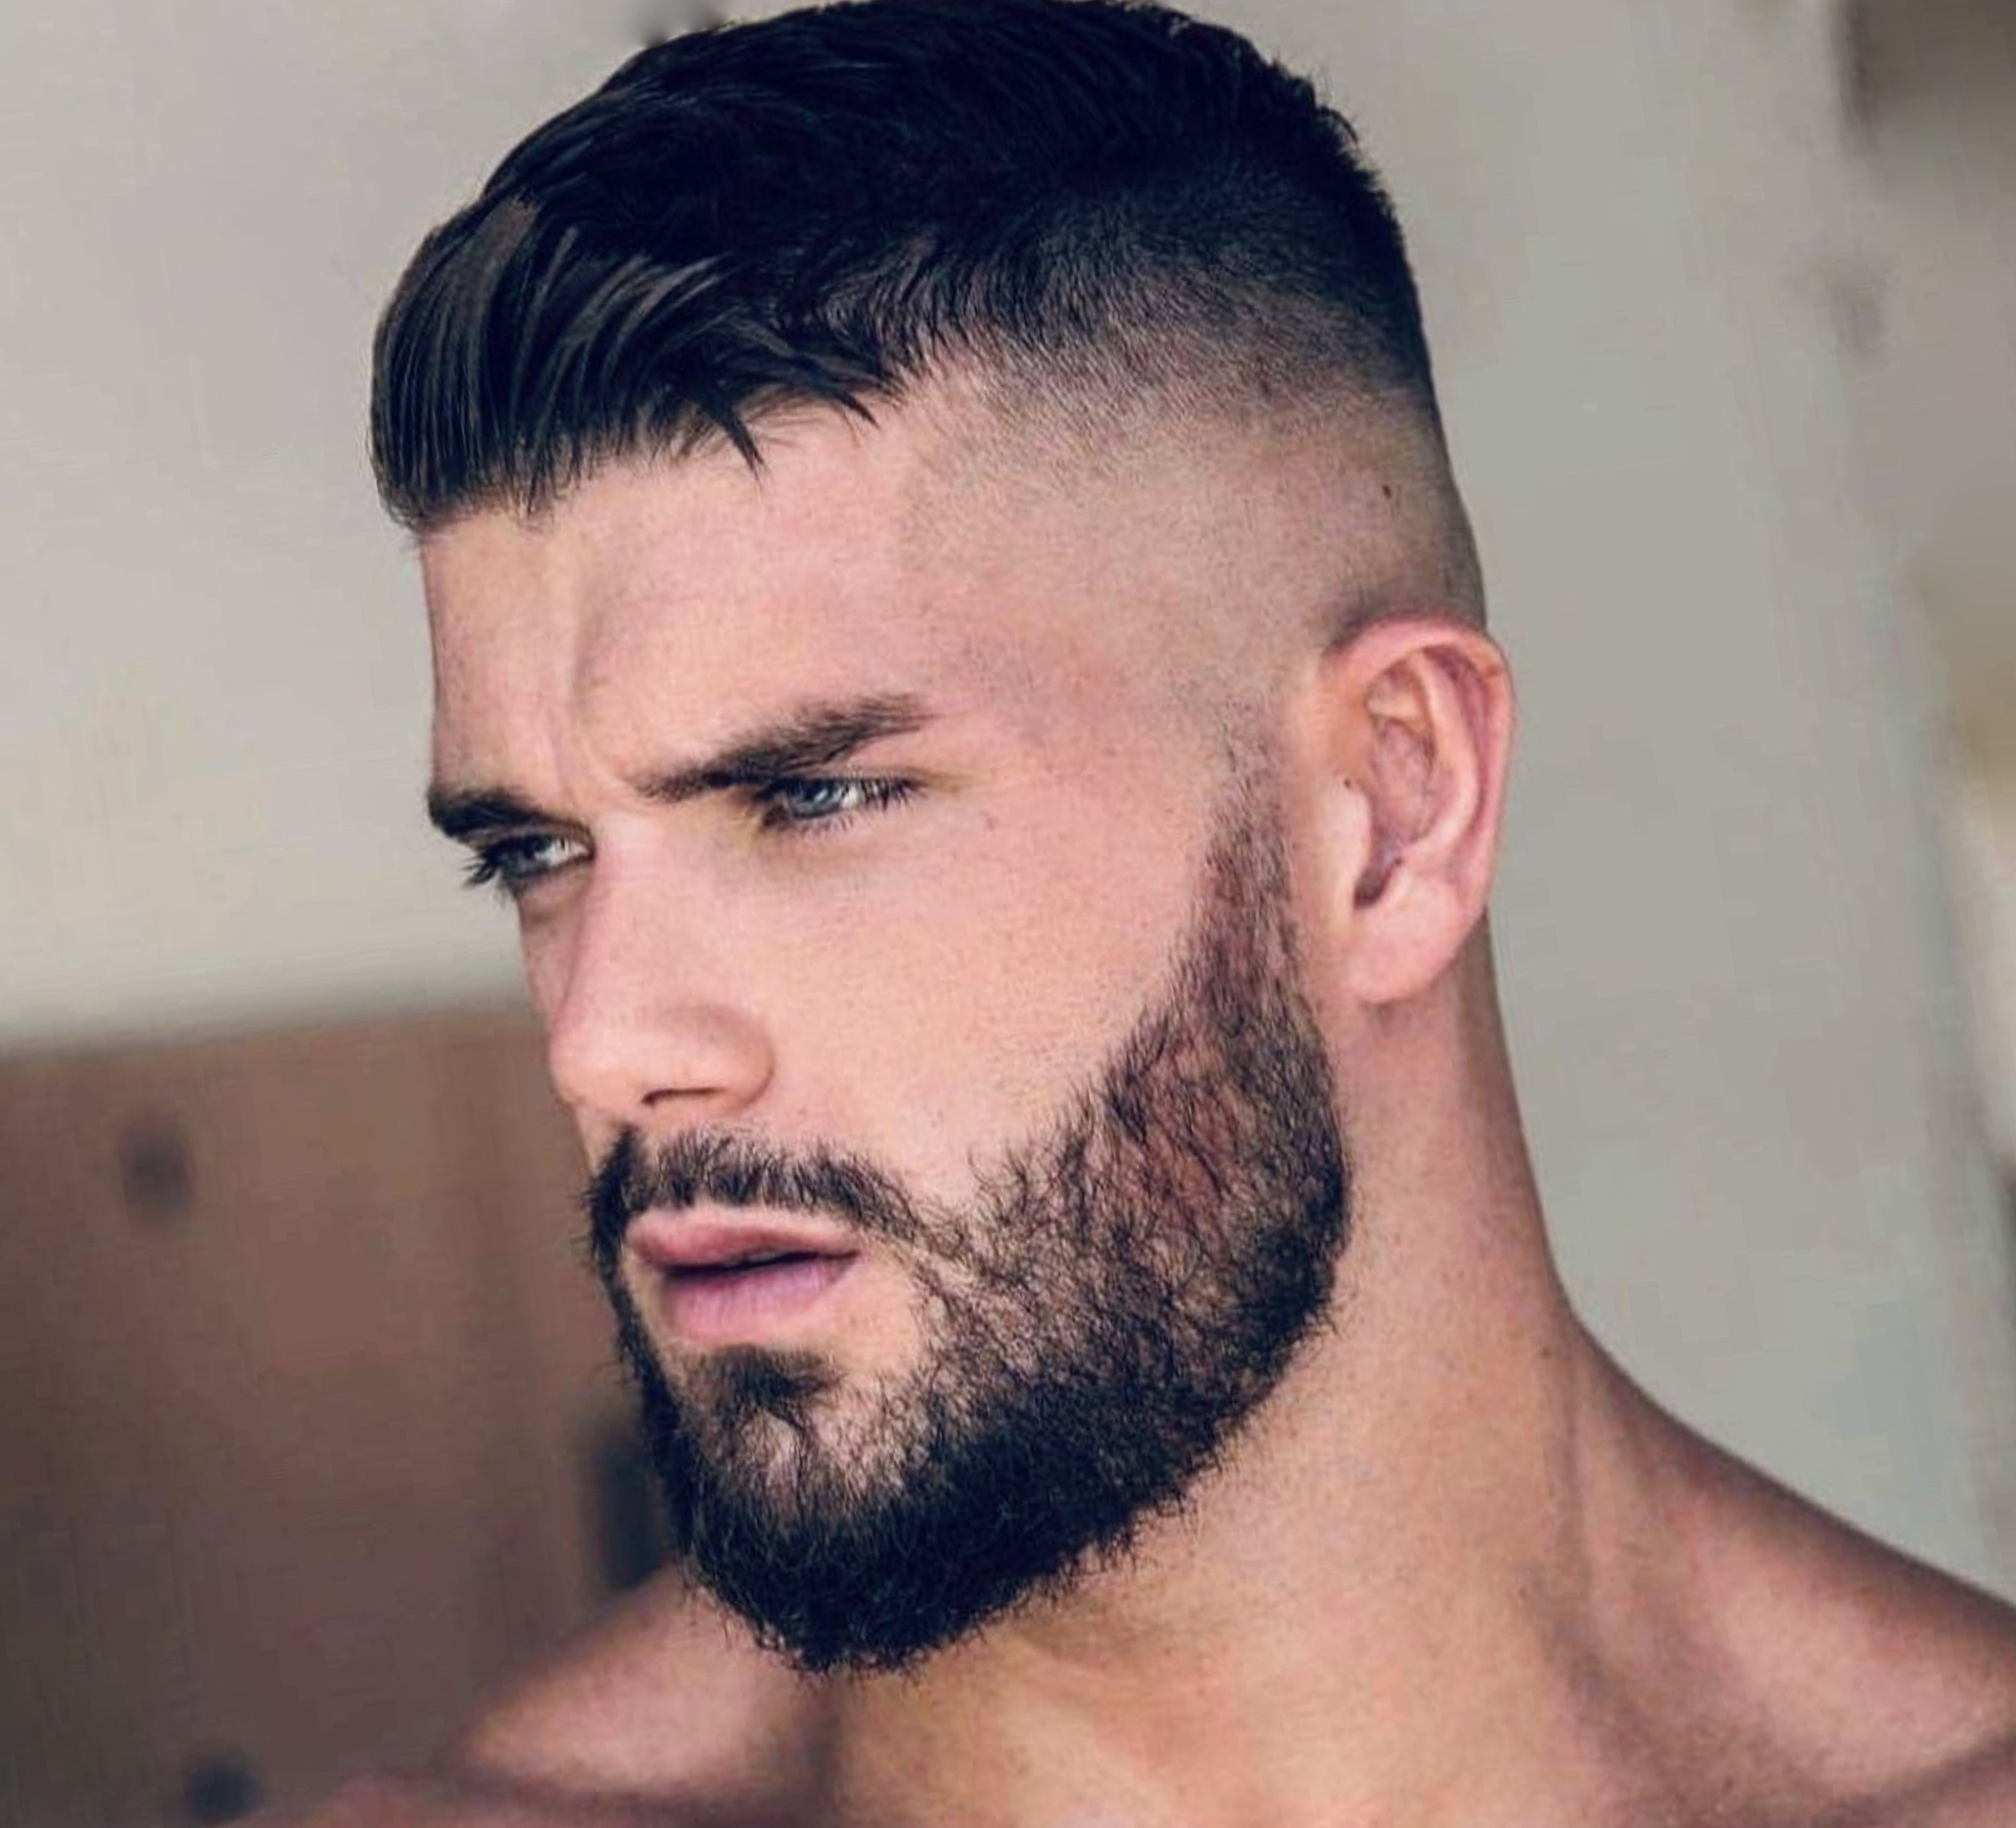 A short beard style for men with short hair.